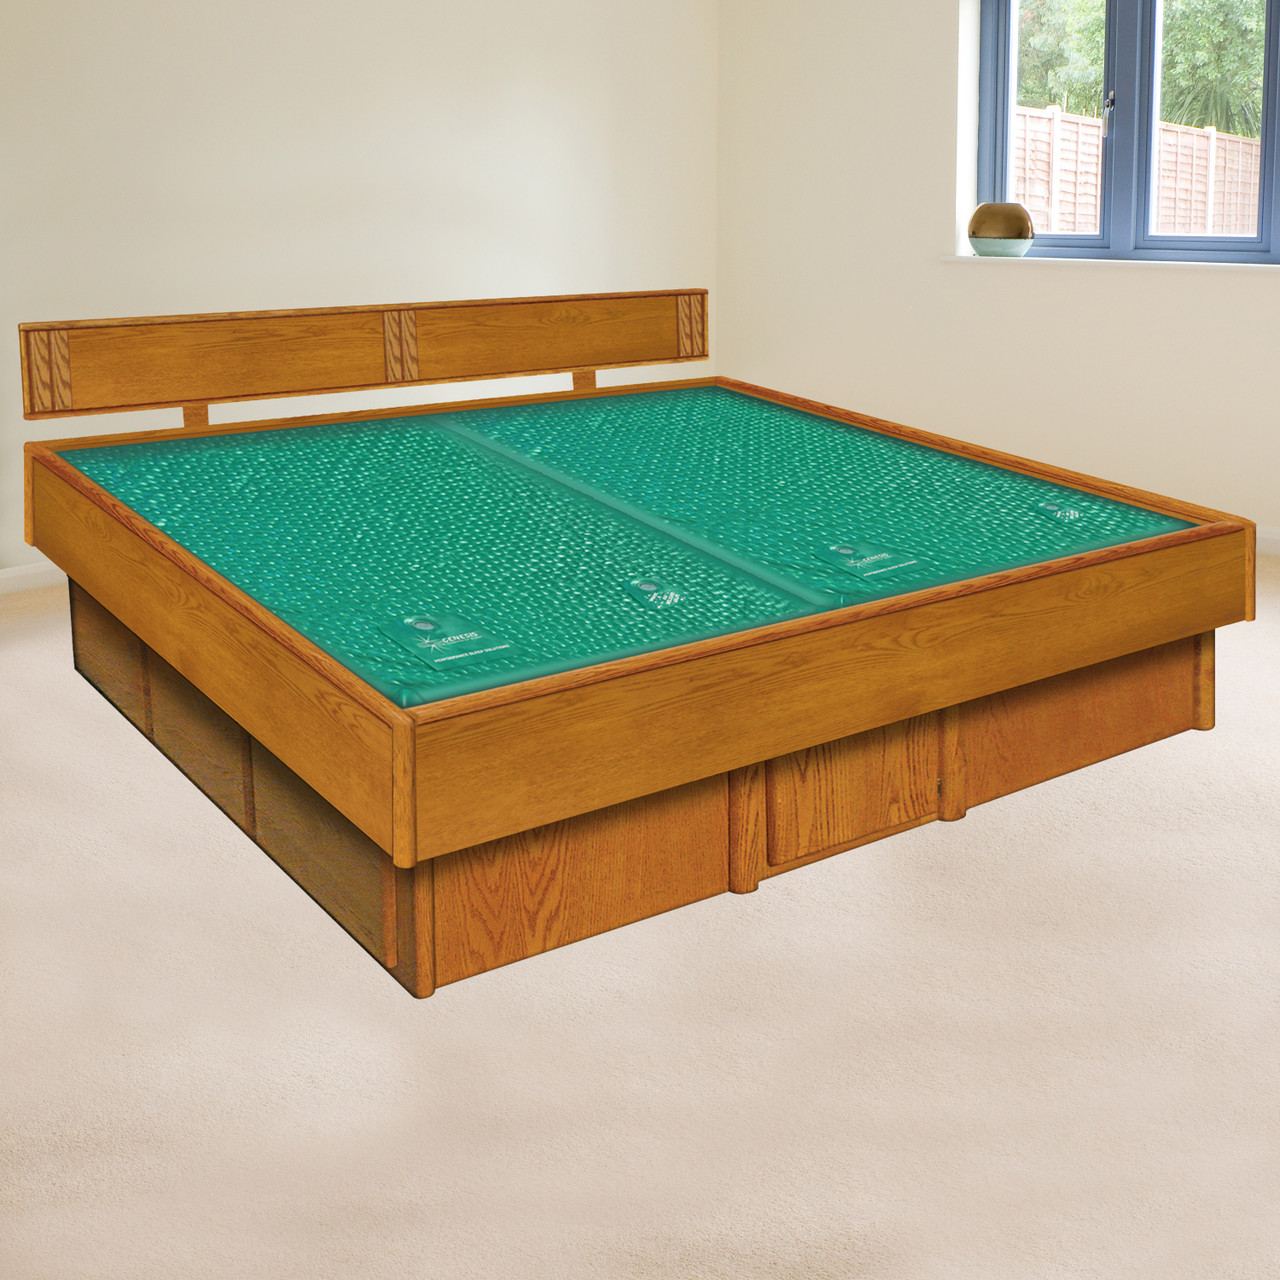 Waterbed Hardside Frame Waterbed Base Free Shipping From Waterbed Bargains